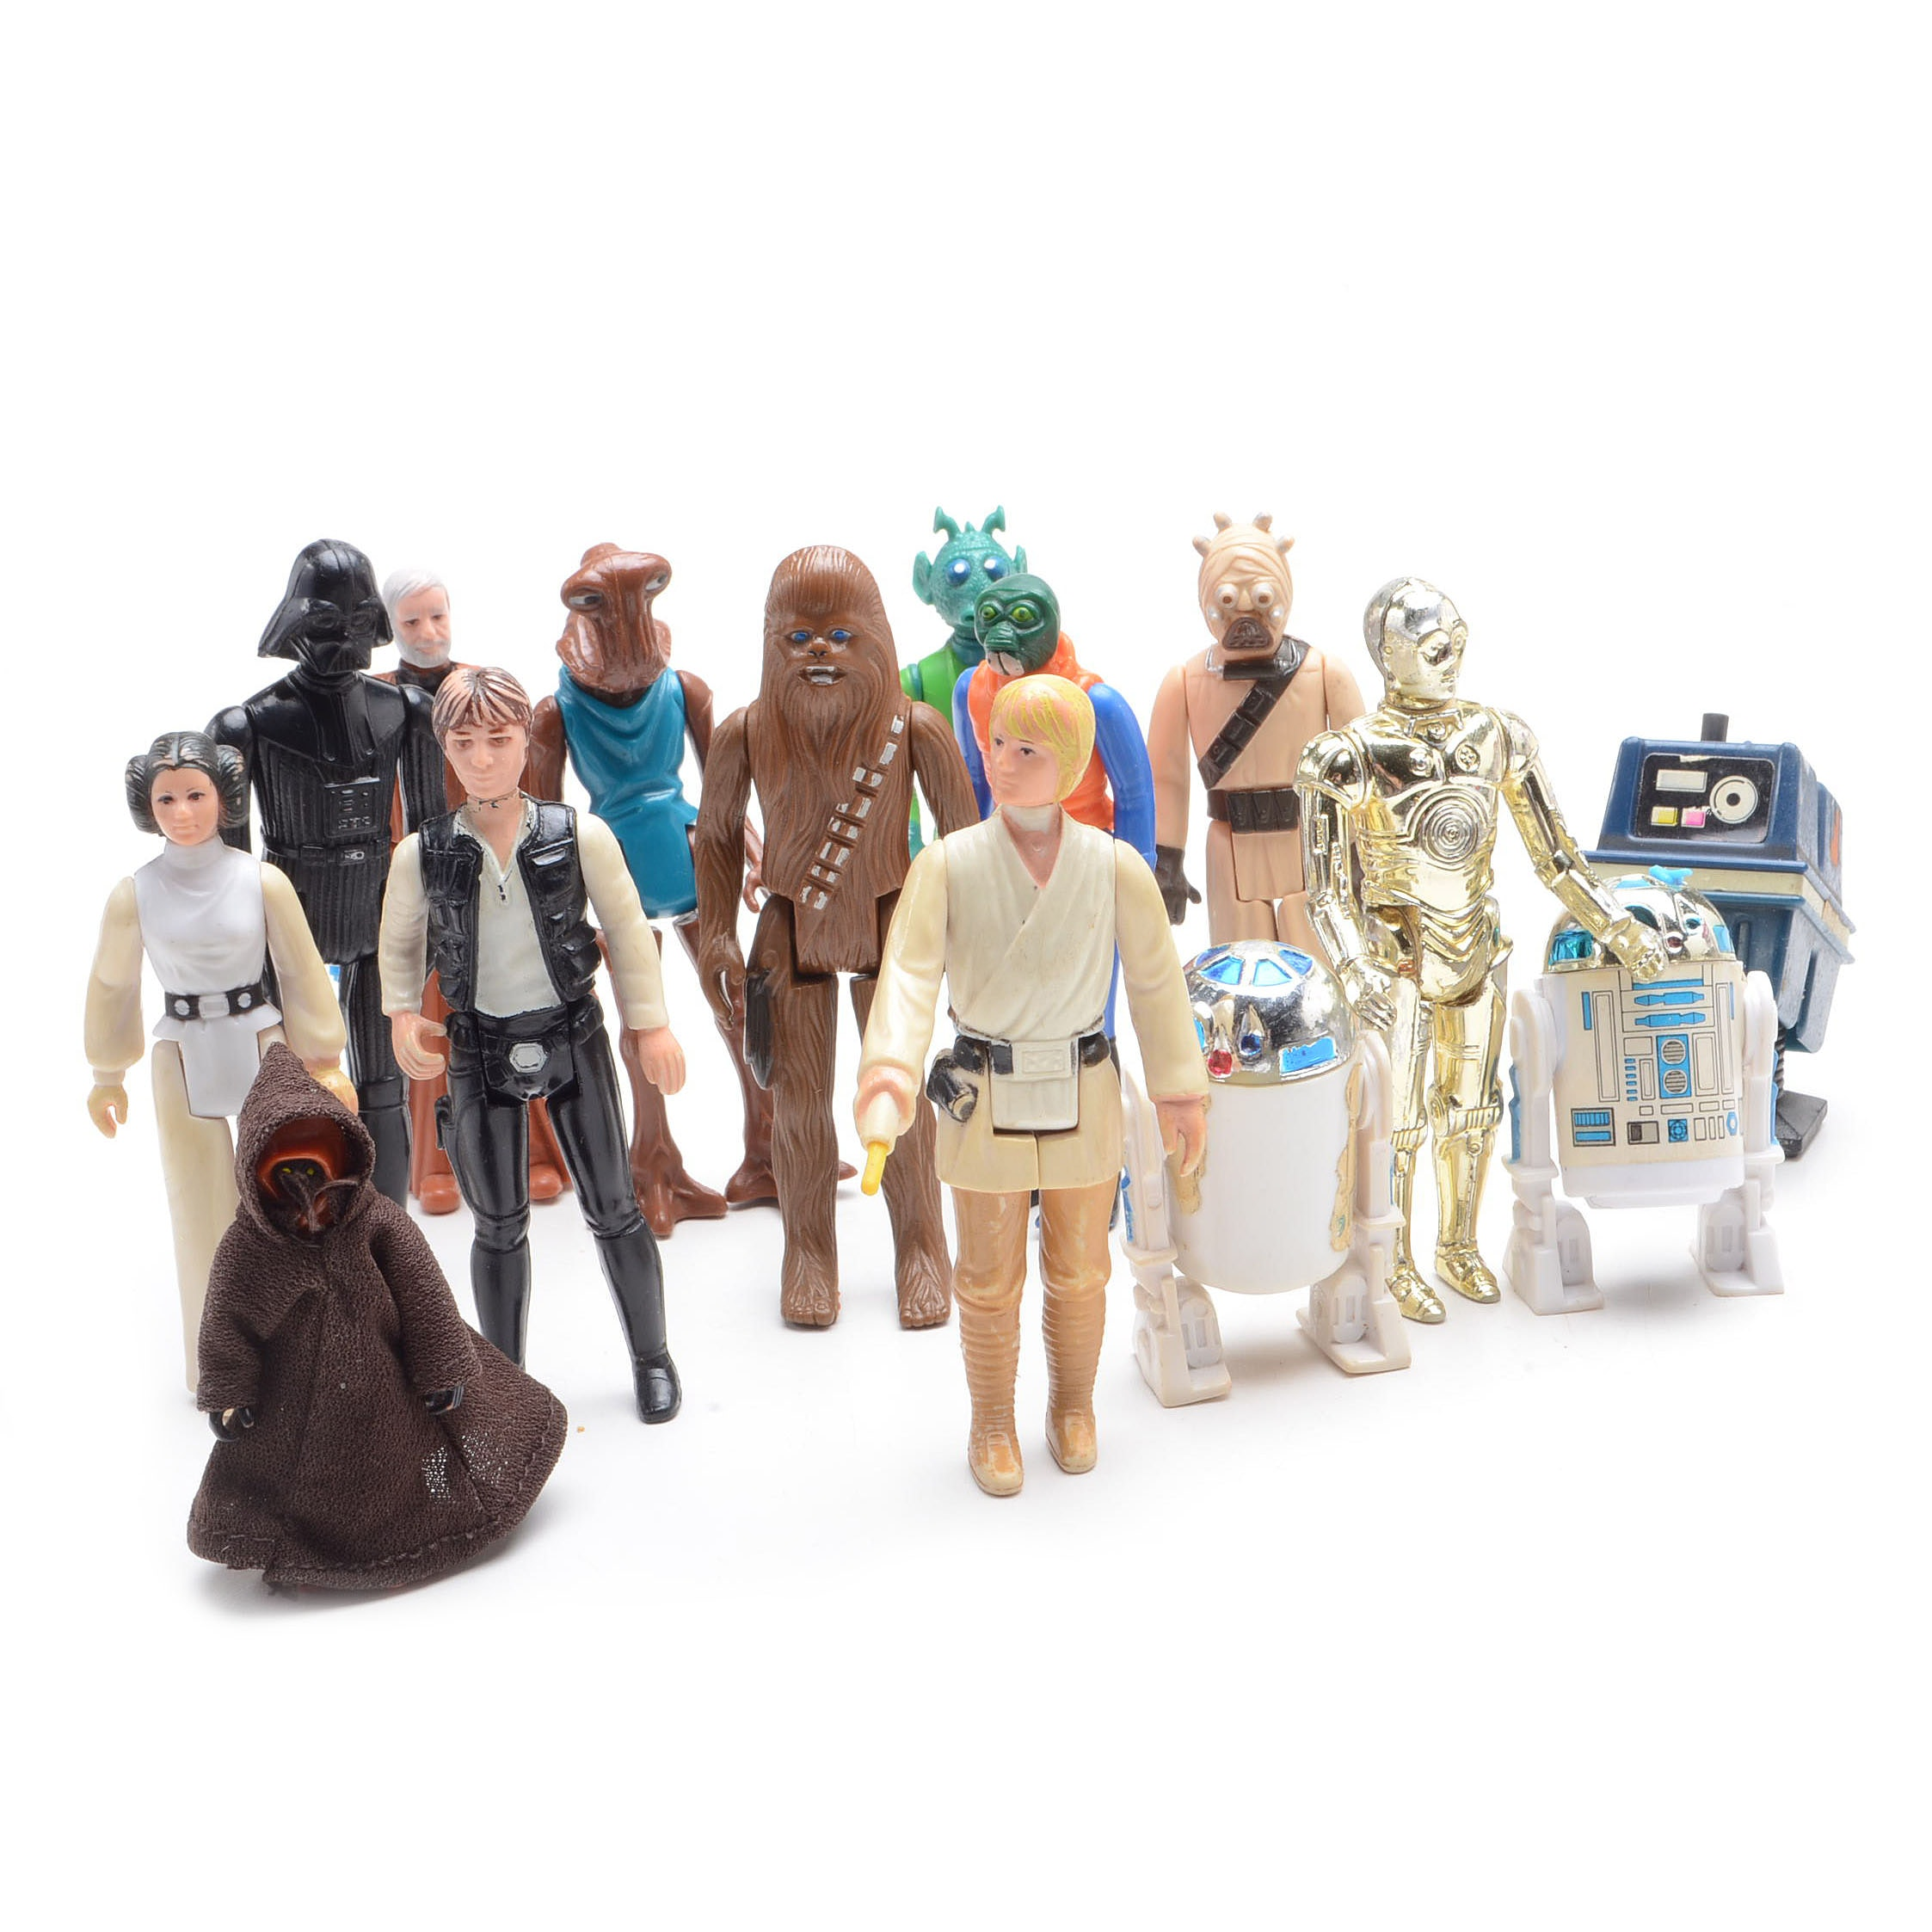 Collection of Vintage Star Wars Figures